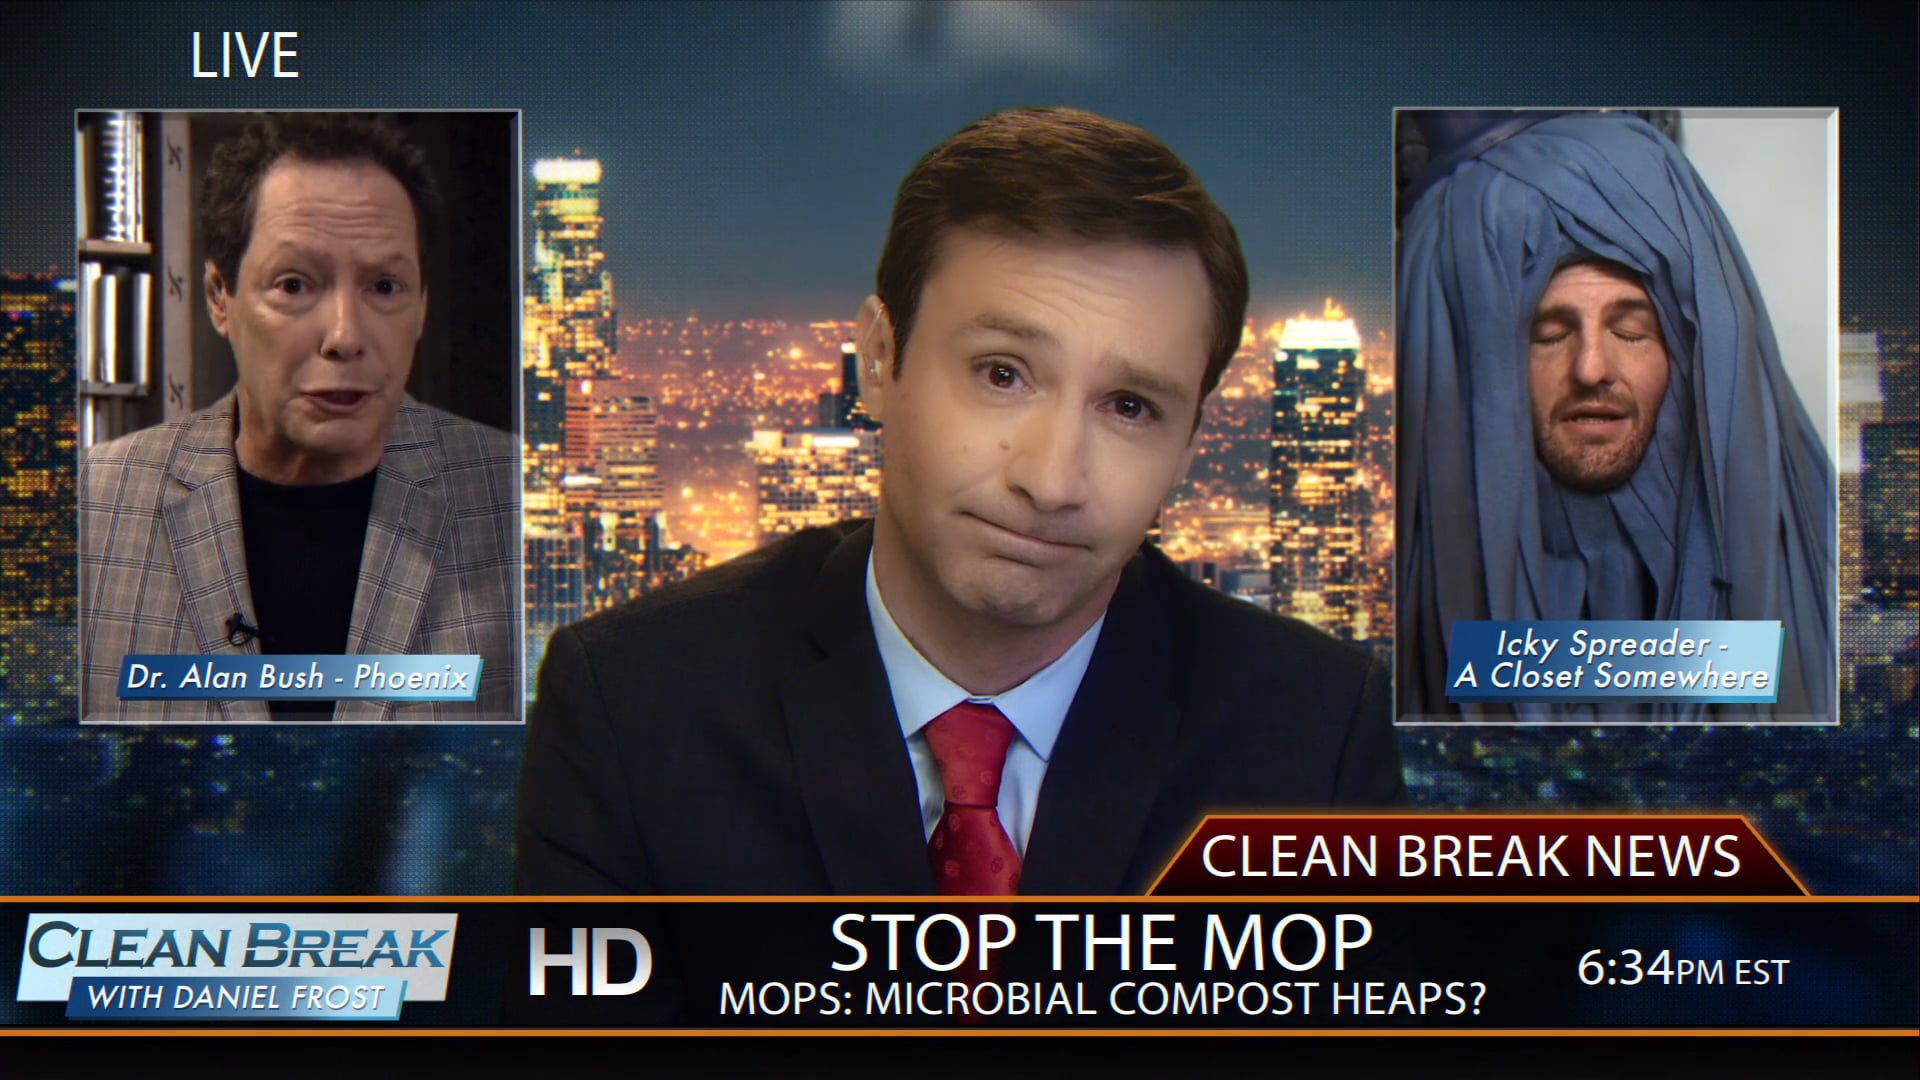 Clean Break with Daniel Frost – Mops Microbial Compost Heaps?